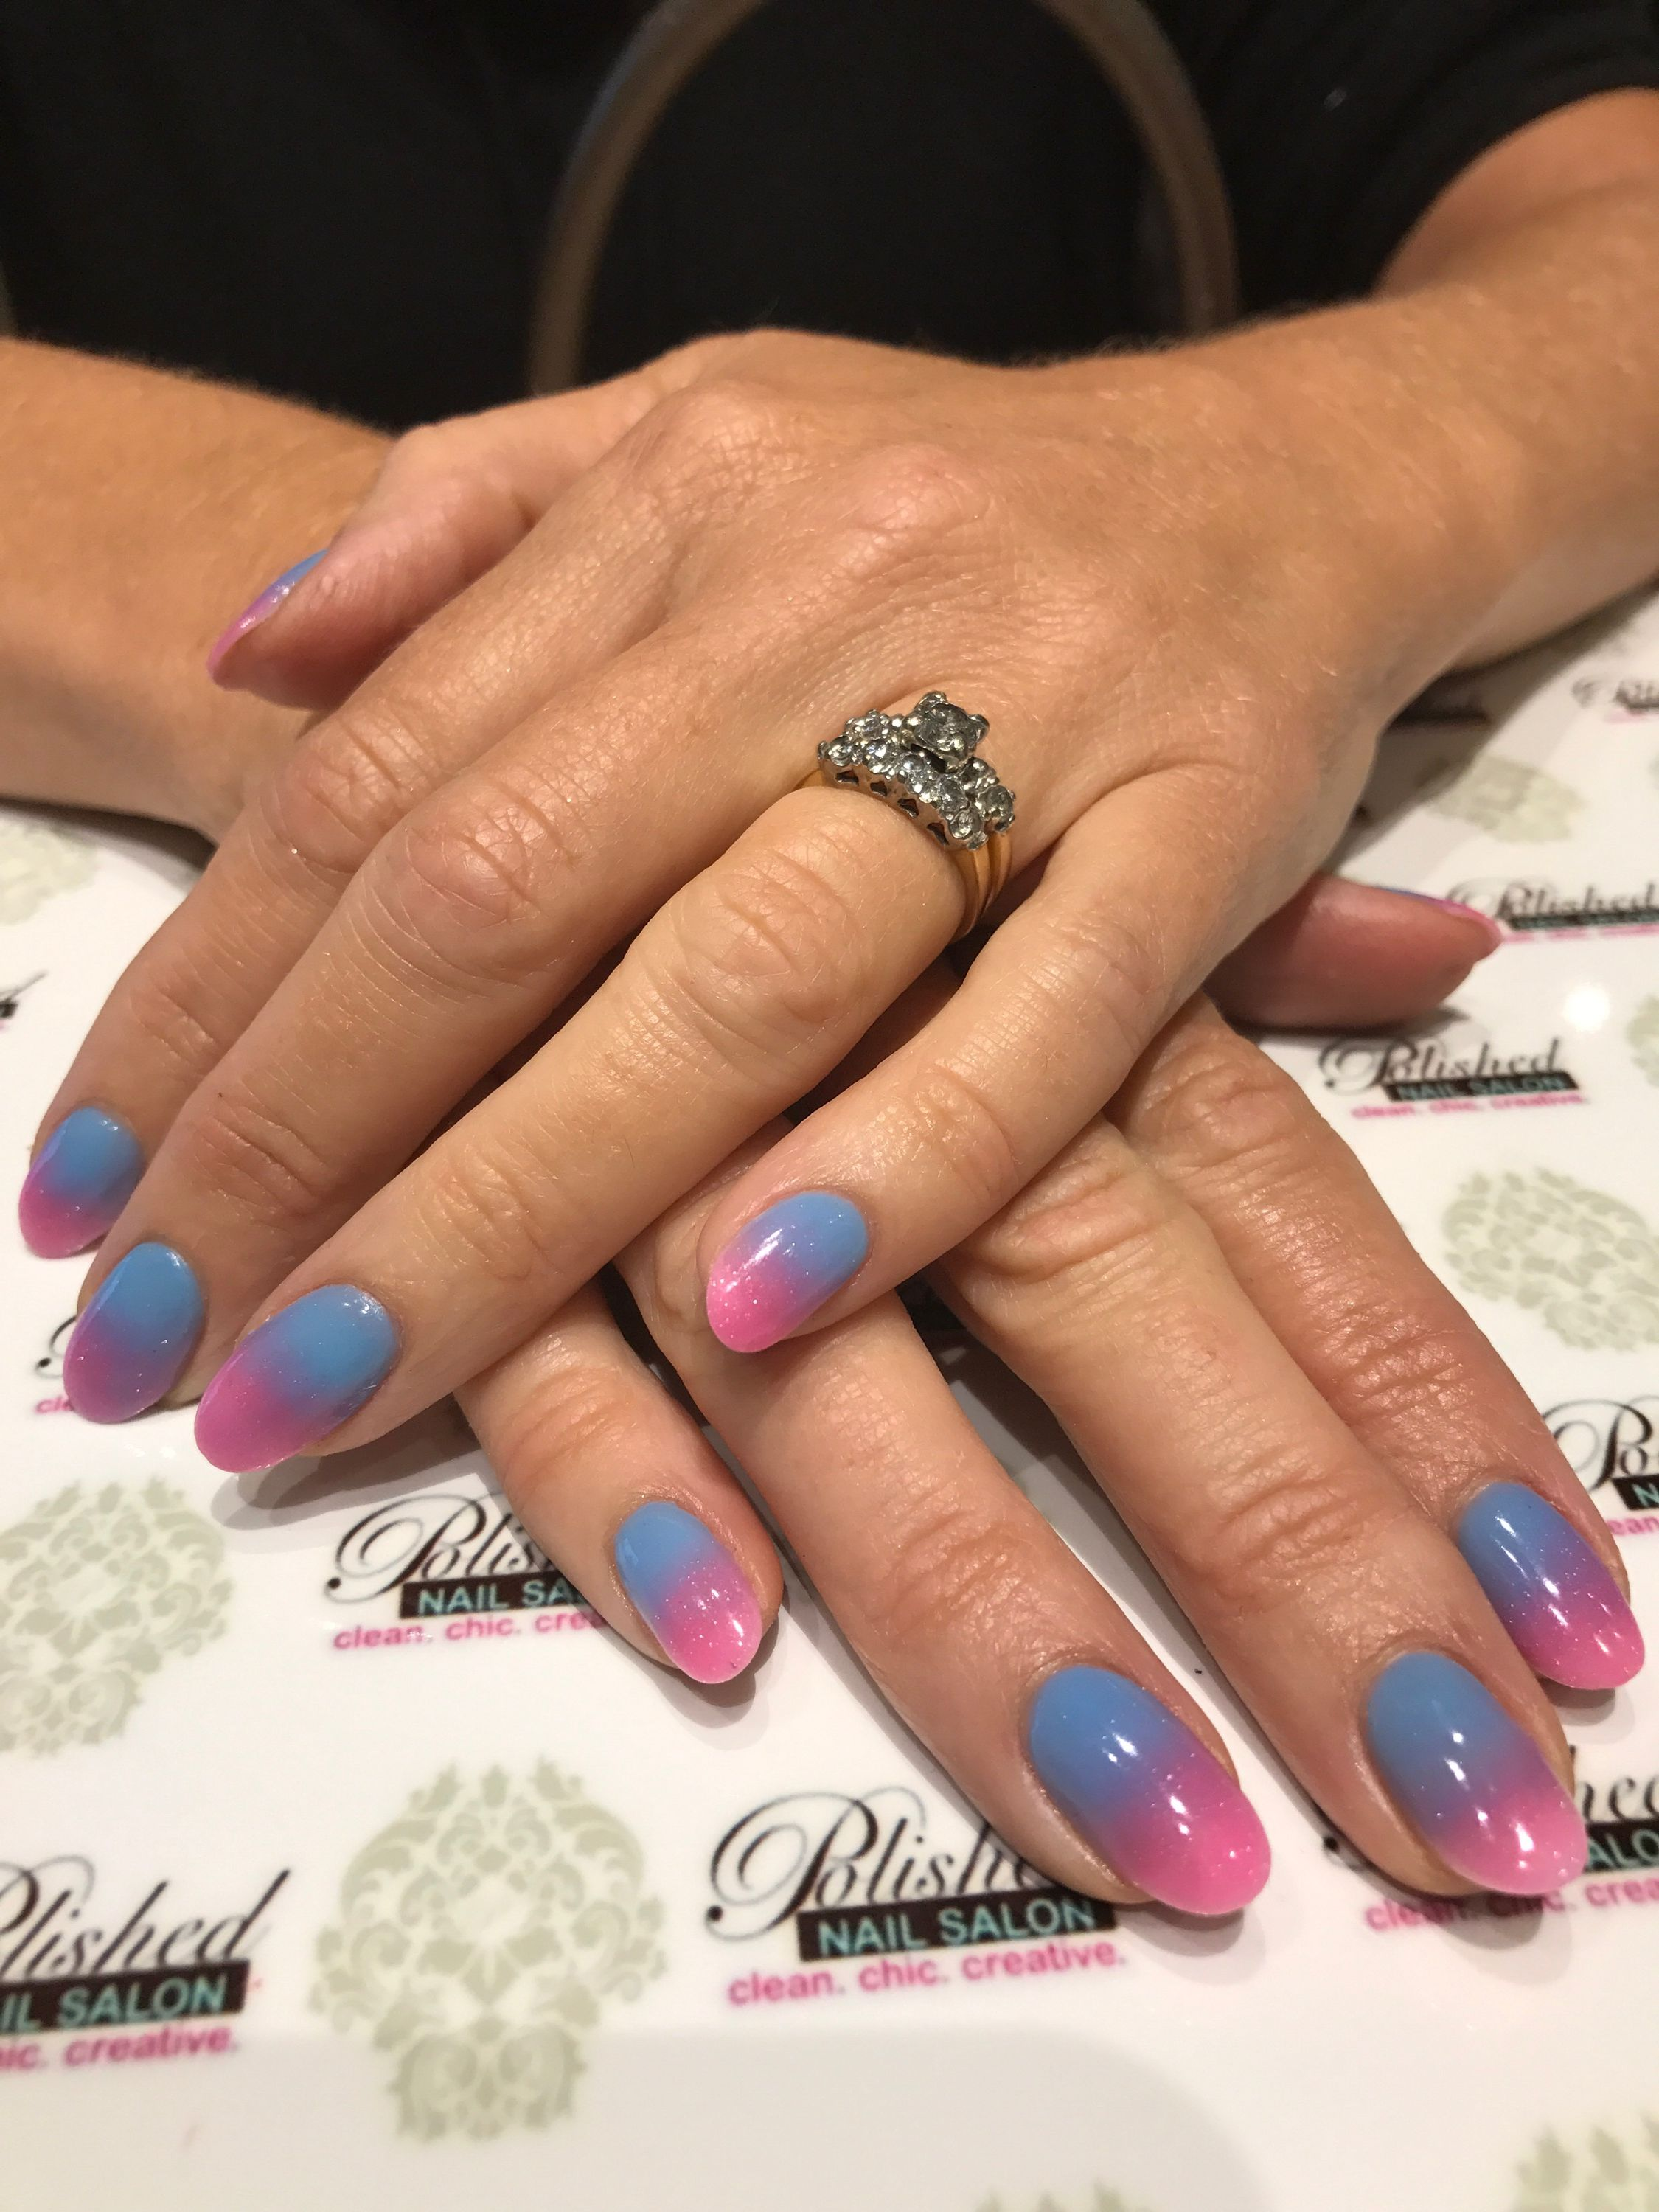 Pretty Ombre Polisheddip The Dipping Powder Is An Lighter And Healthier Alternative To The Traditional Liquid And Acrylic Nails Nail Polish How To Do Nails